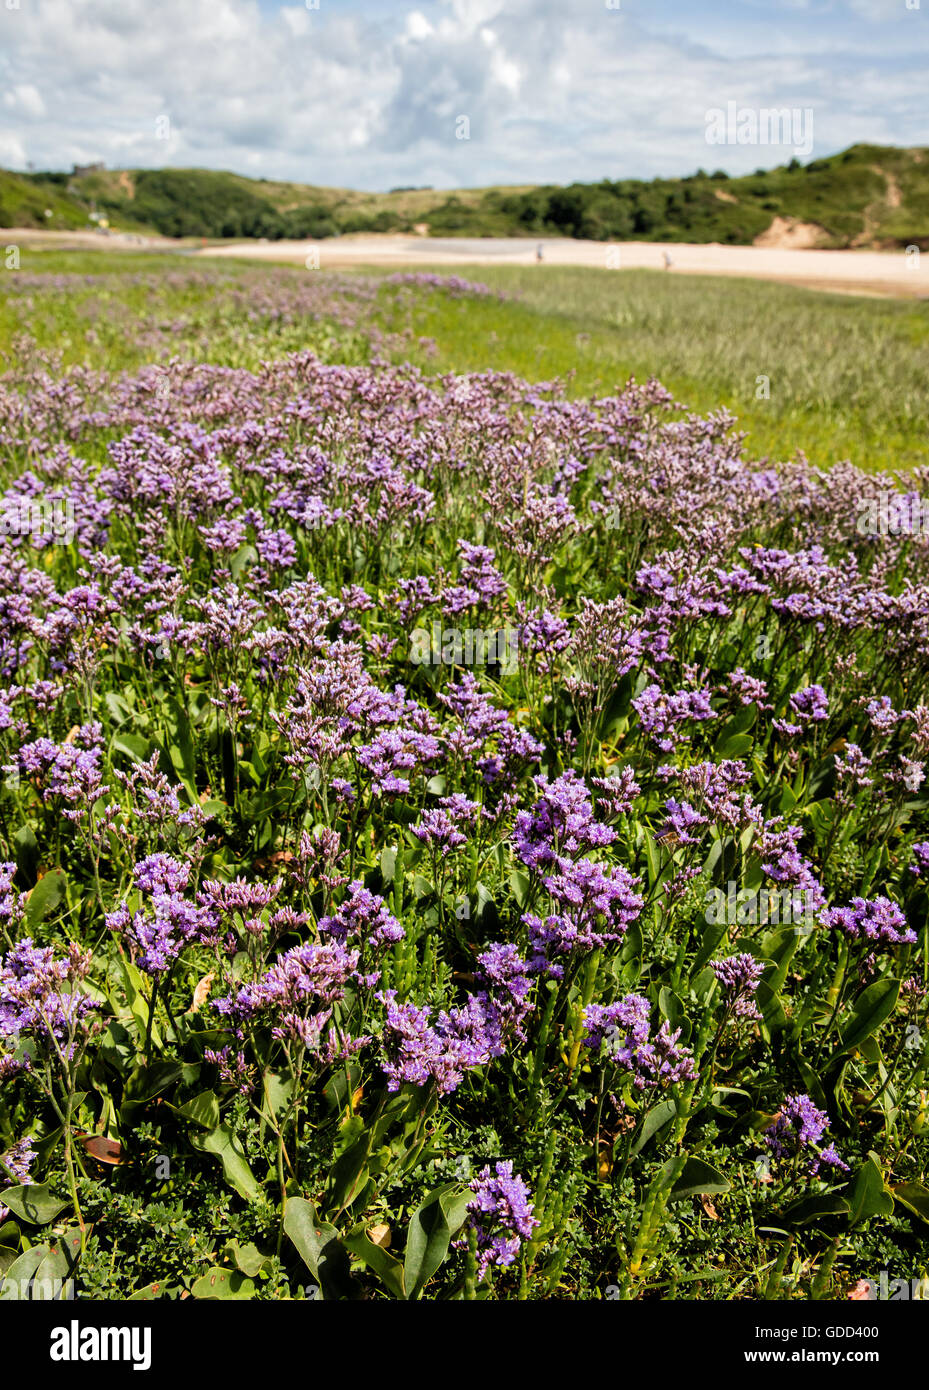 Sea Lavender LImonium vulgare growing on coastal salt marsh at Three Cliff Bay on the Gower peninsula in South Wales - Stock Image